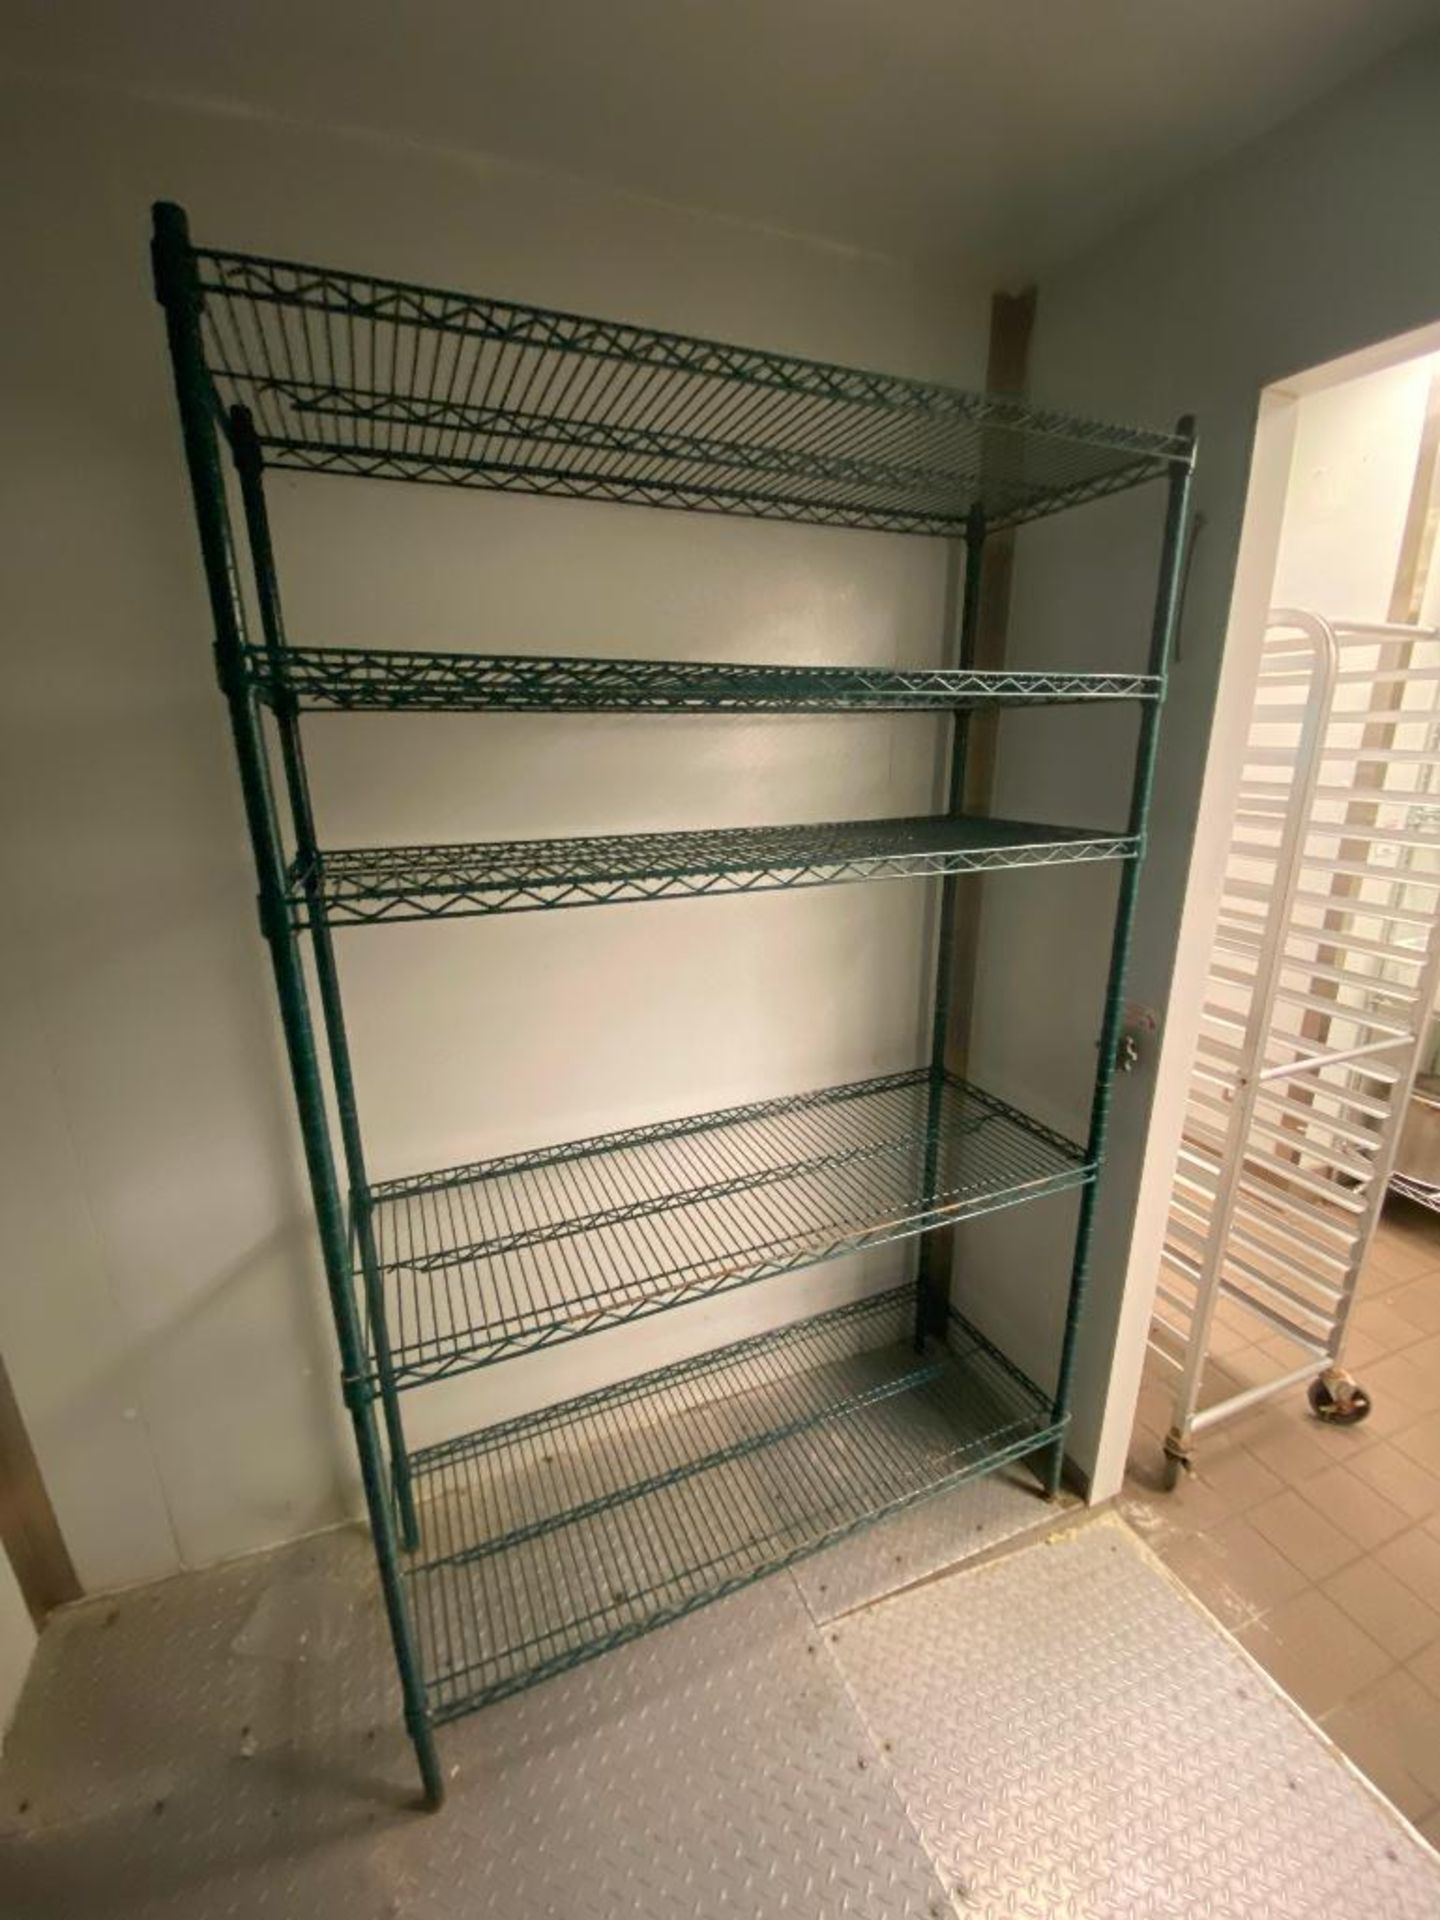 LOT OF (4) GREEN WIRE STORAGE RACKS, ASSORTED SIZES - Image 4 of 4